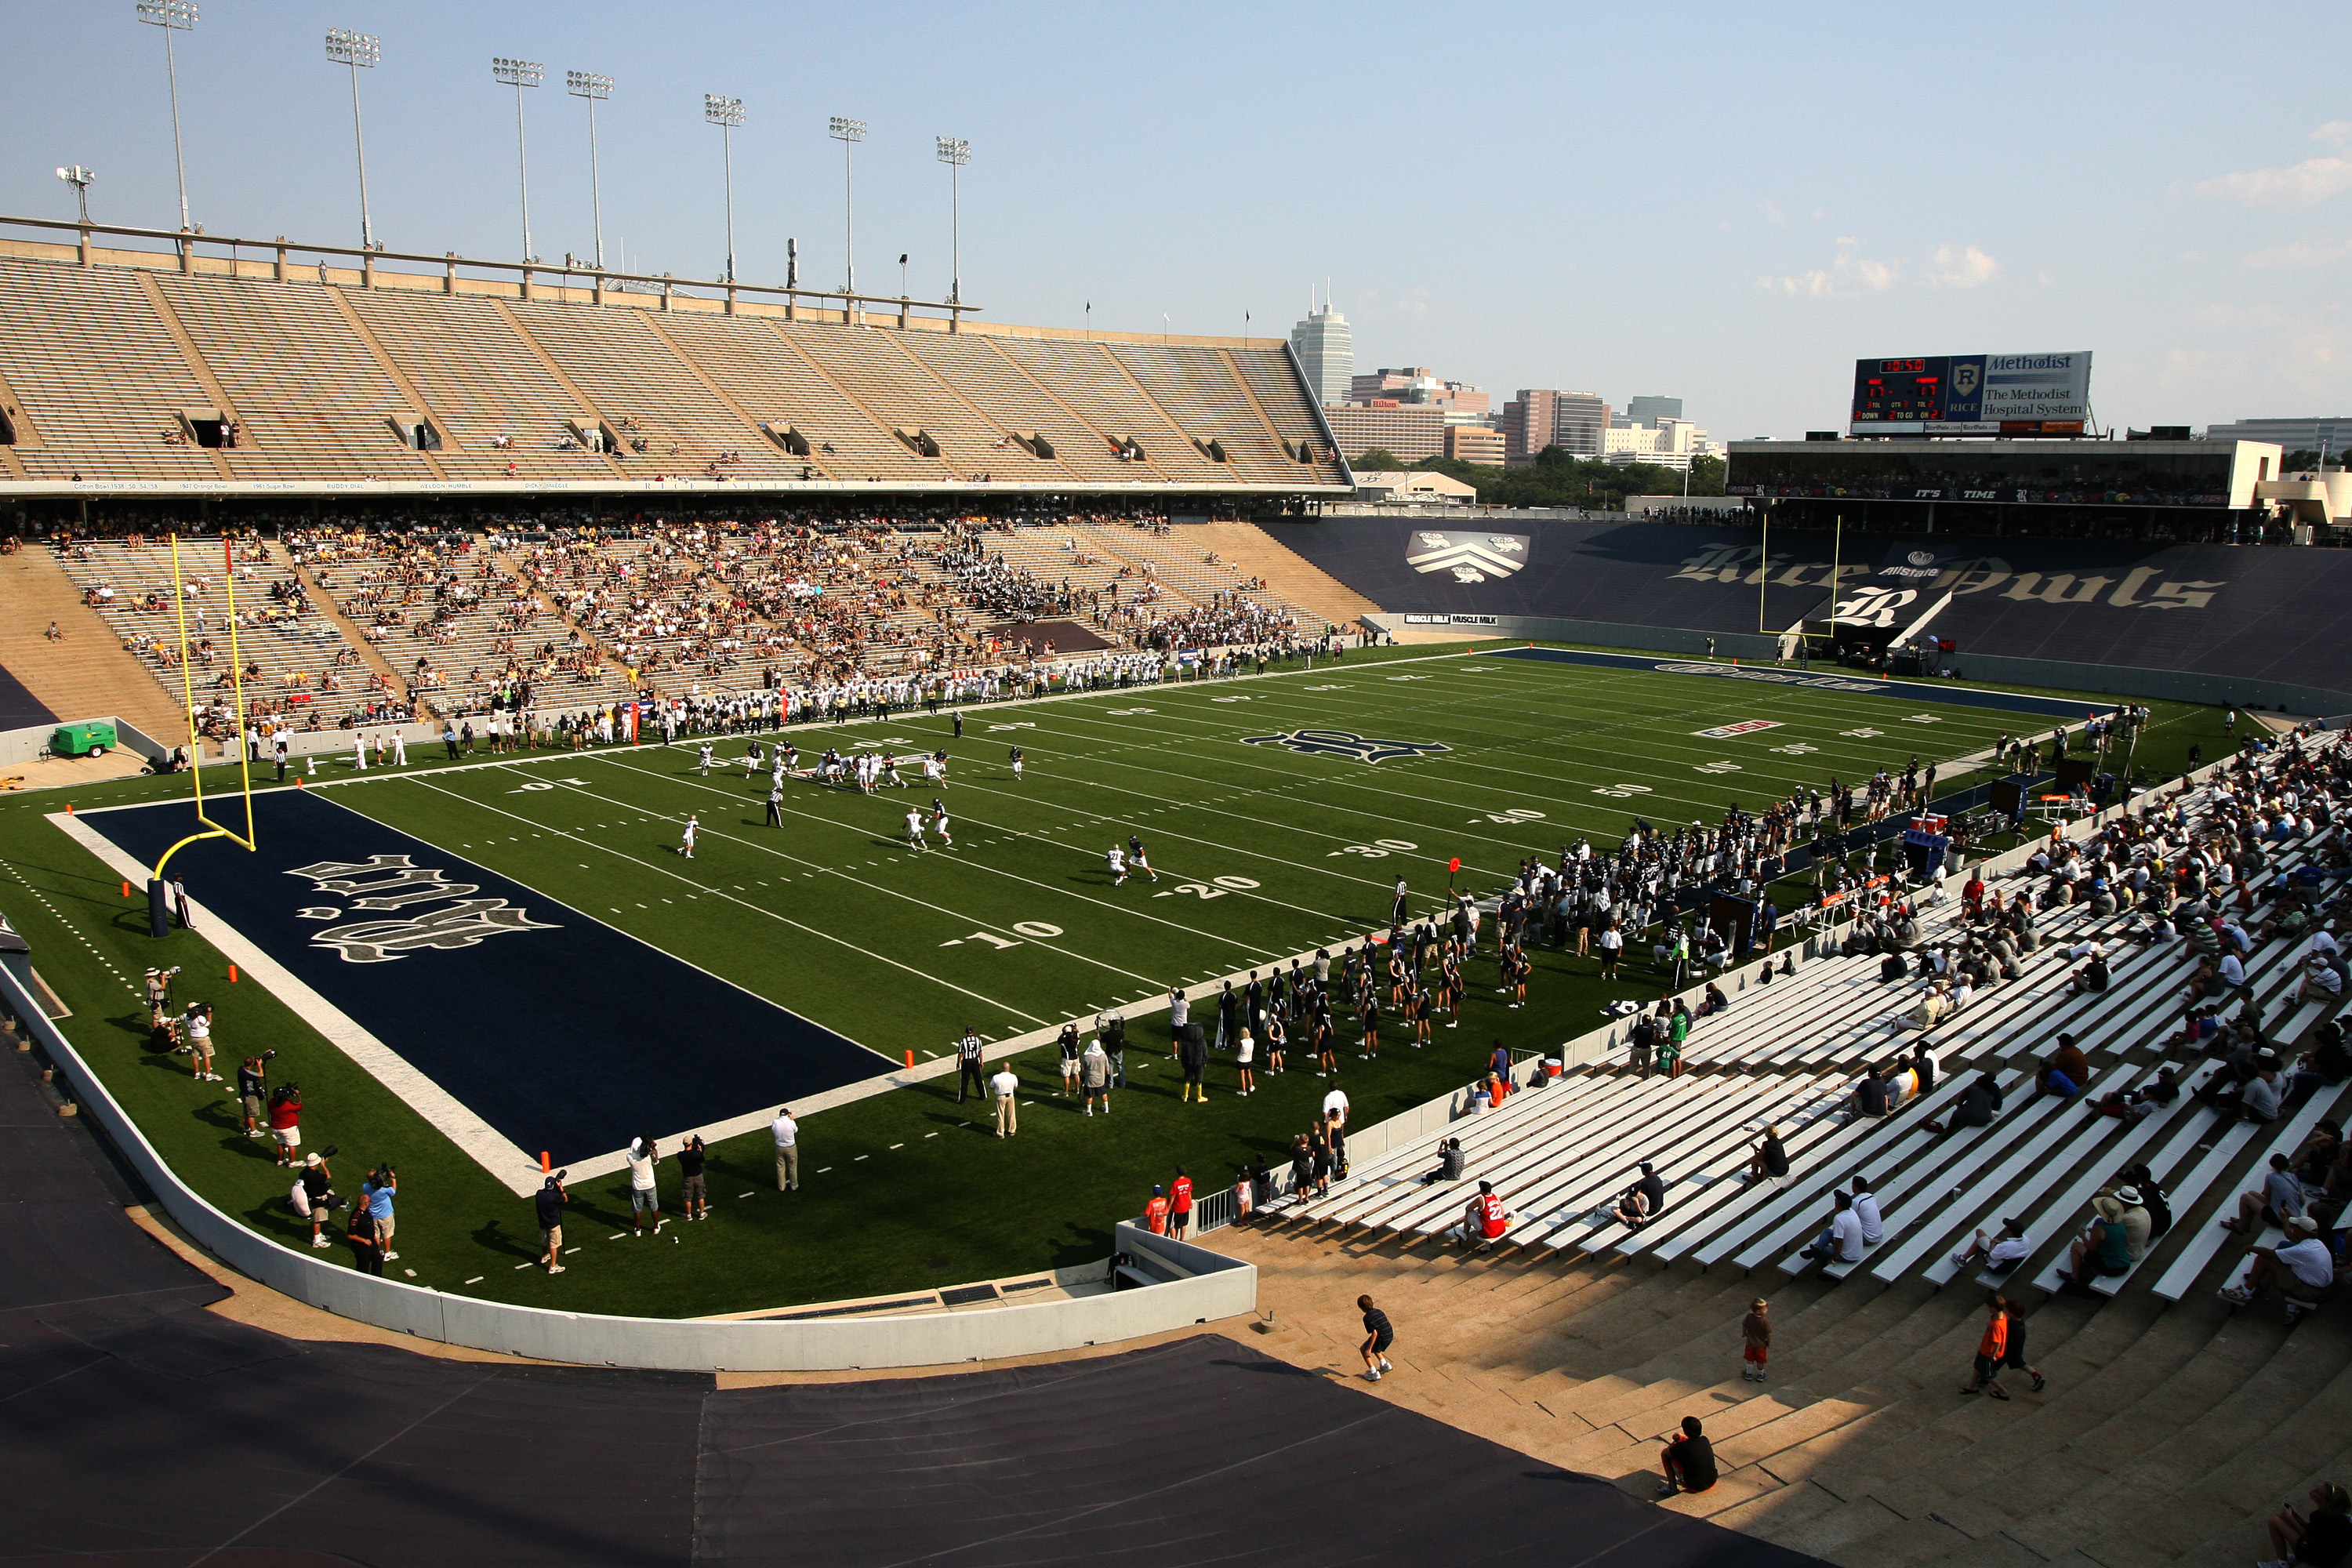 Home of the Rice University football team, the Owls, since 1950 when it first opened, this stadium also served as a backdrop for President John F. Kennedy's famous speech in 1962 challenging America to place a man on the moon.